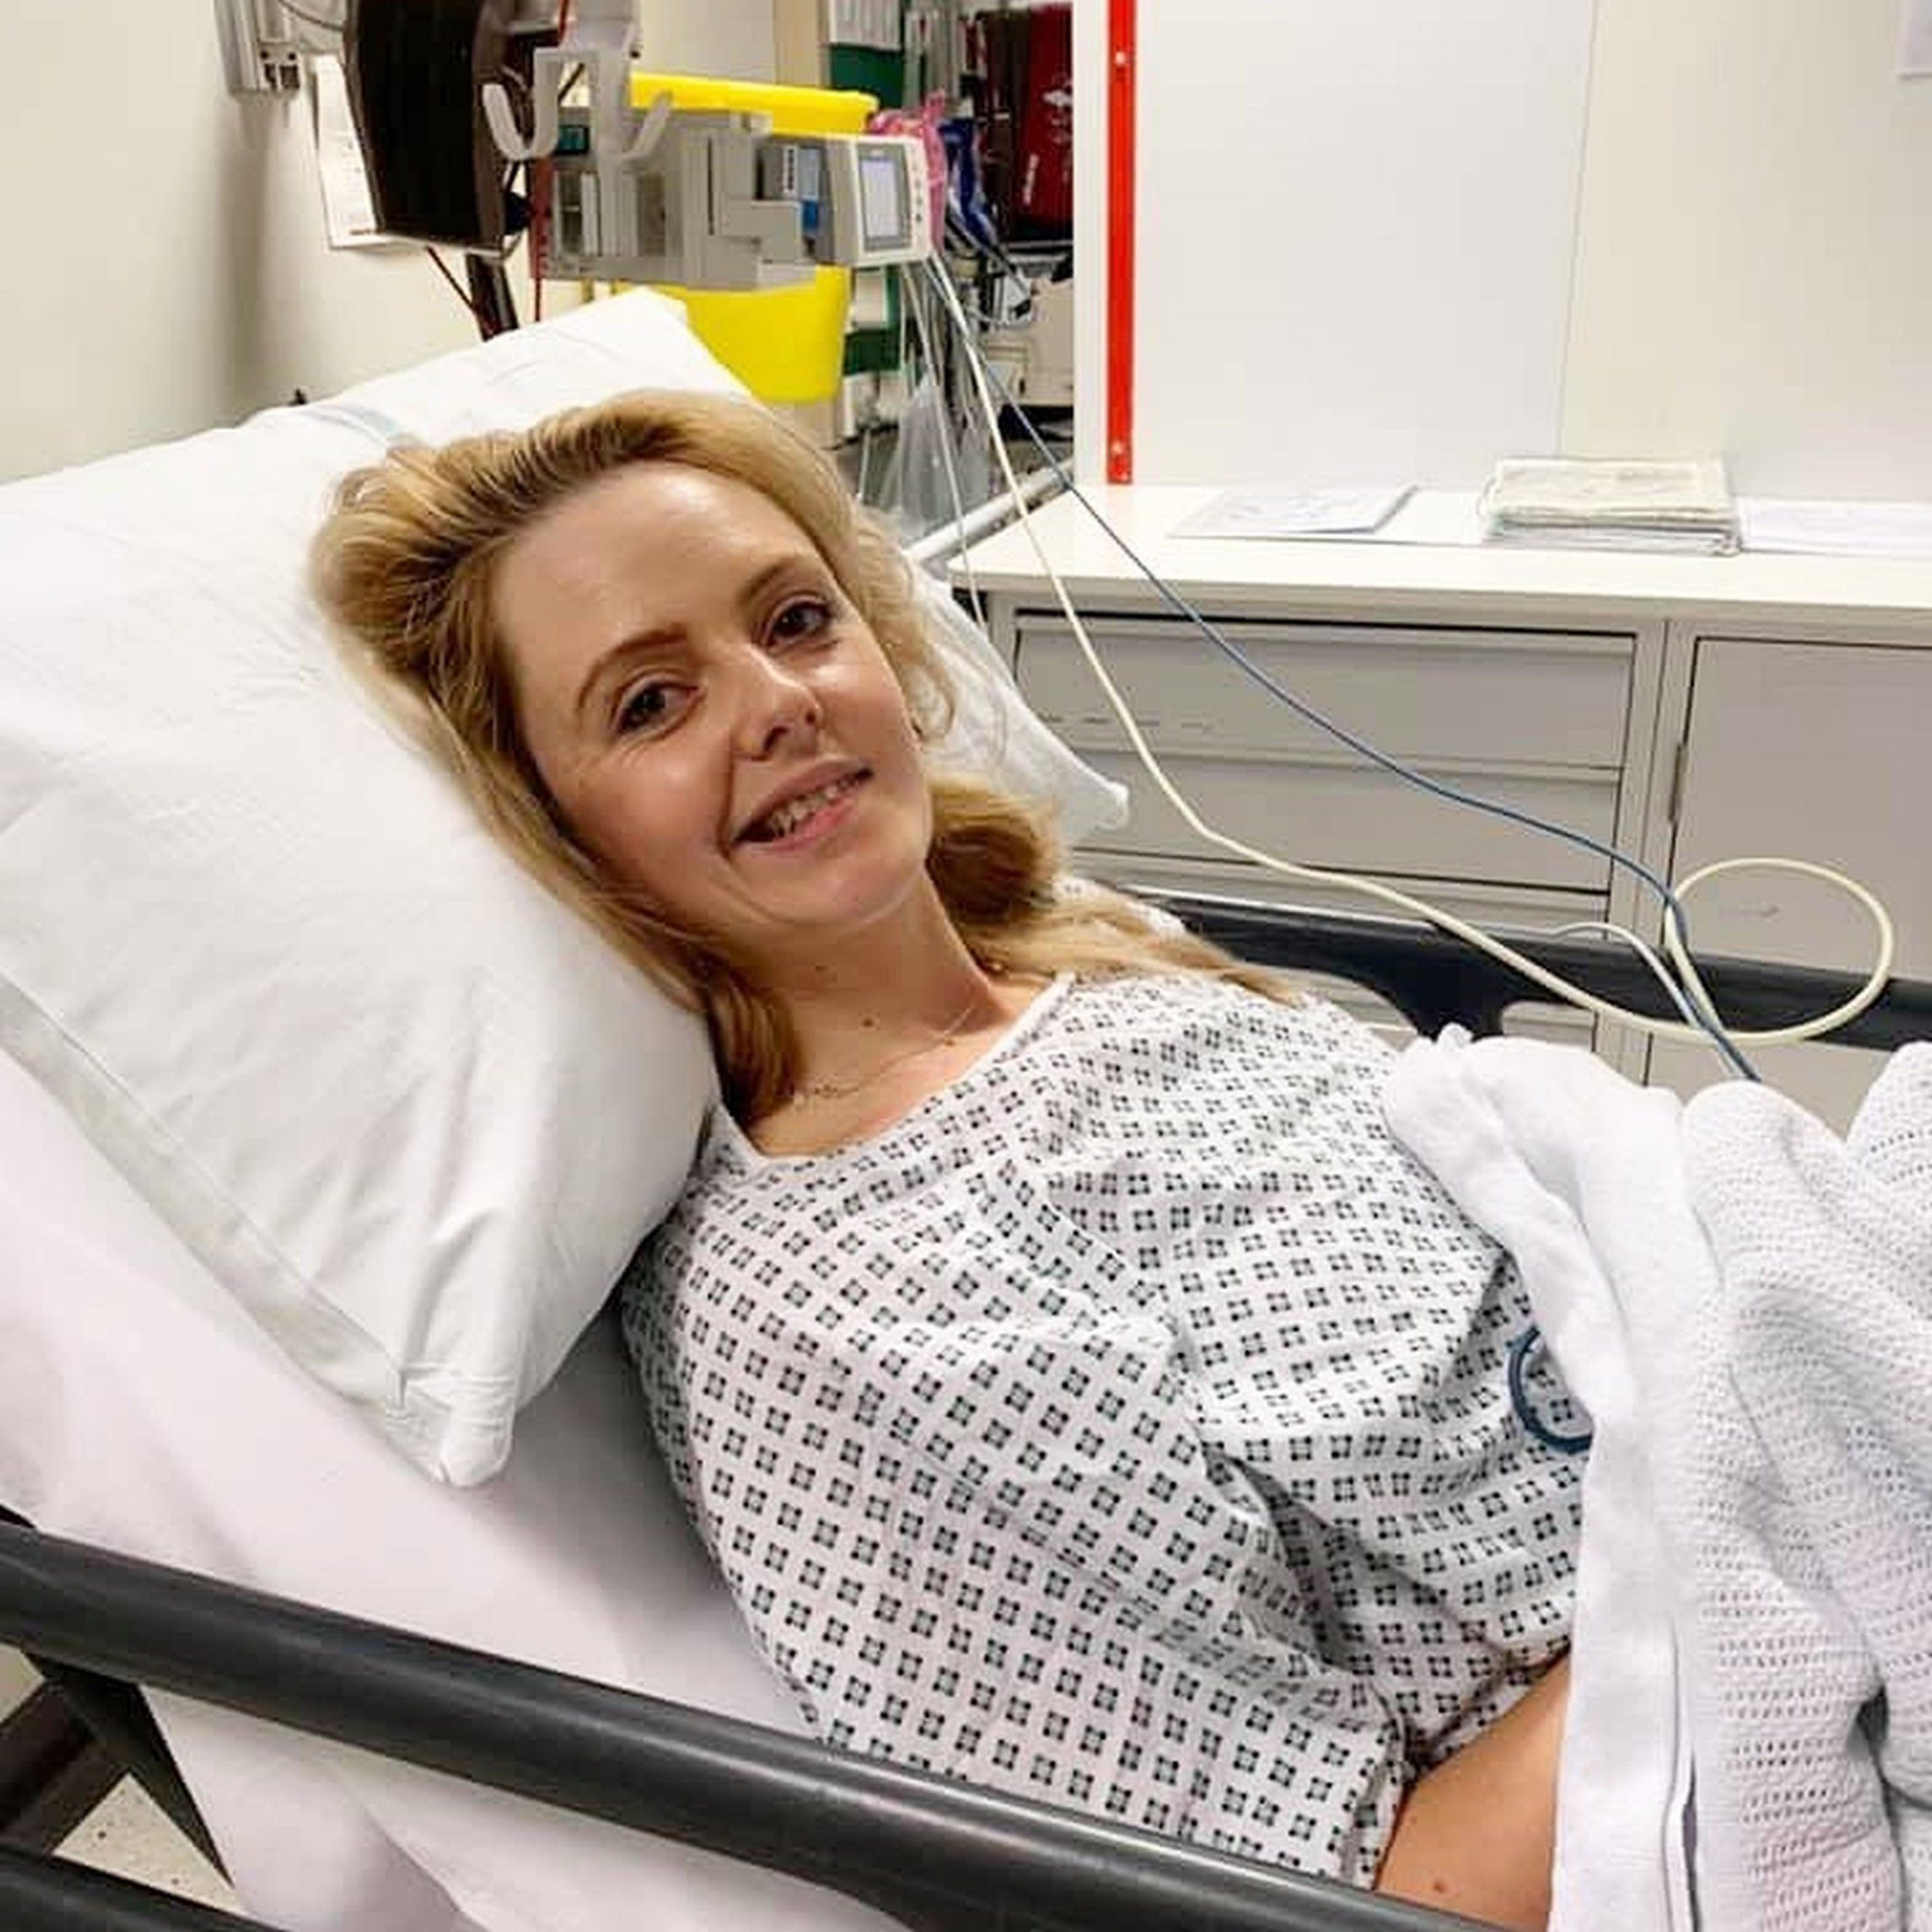 Mum, 28, paralysed by stroke from taking the pill